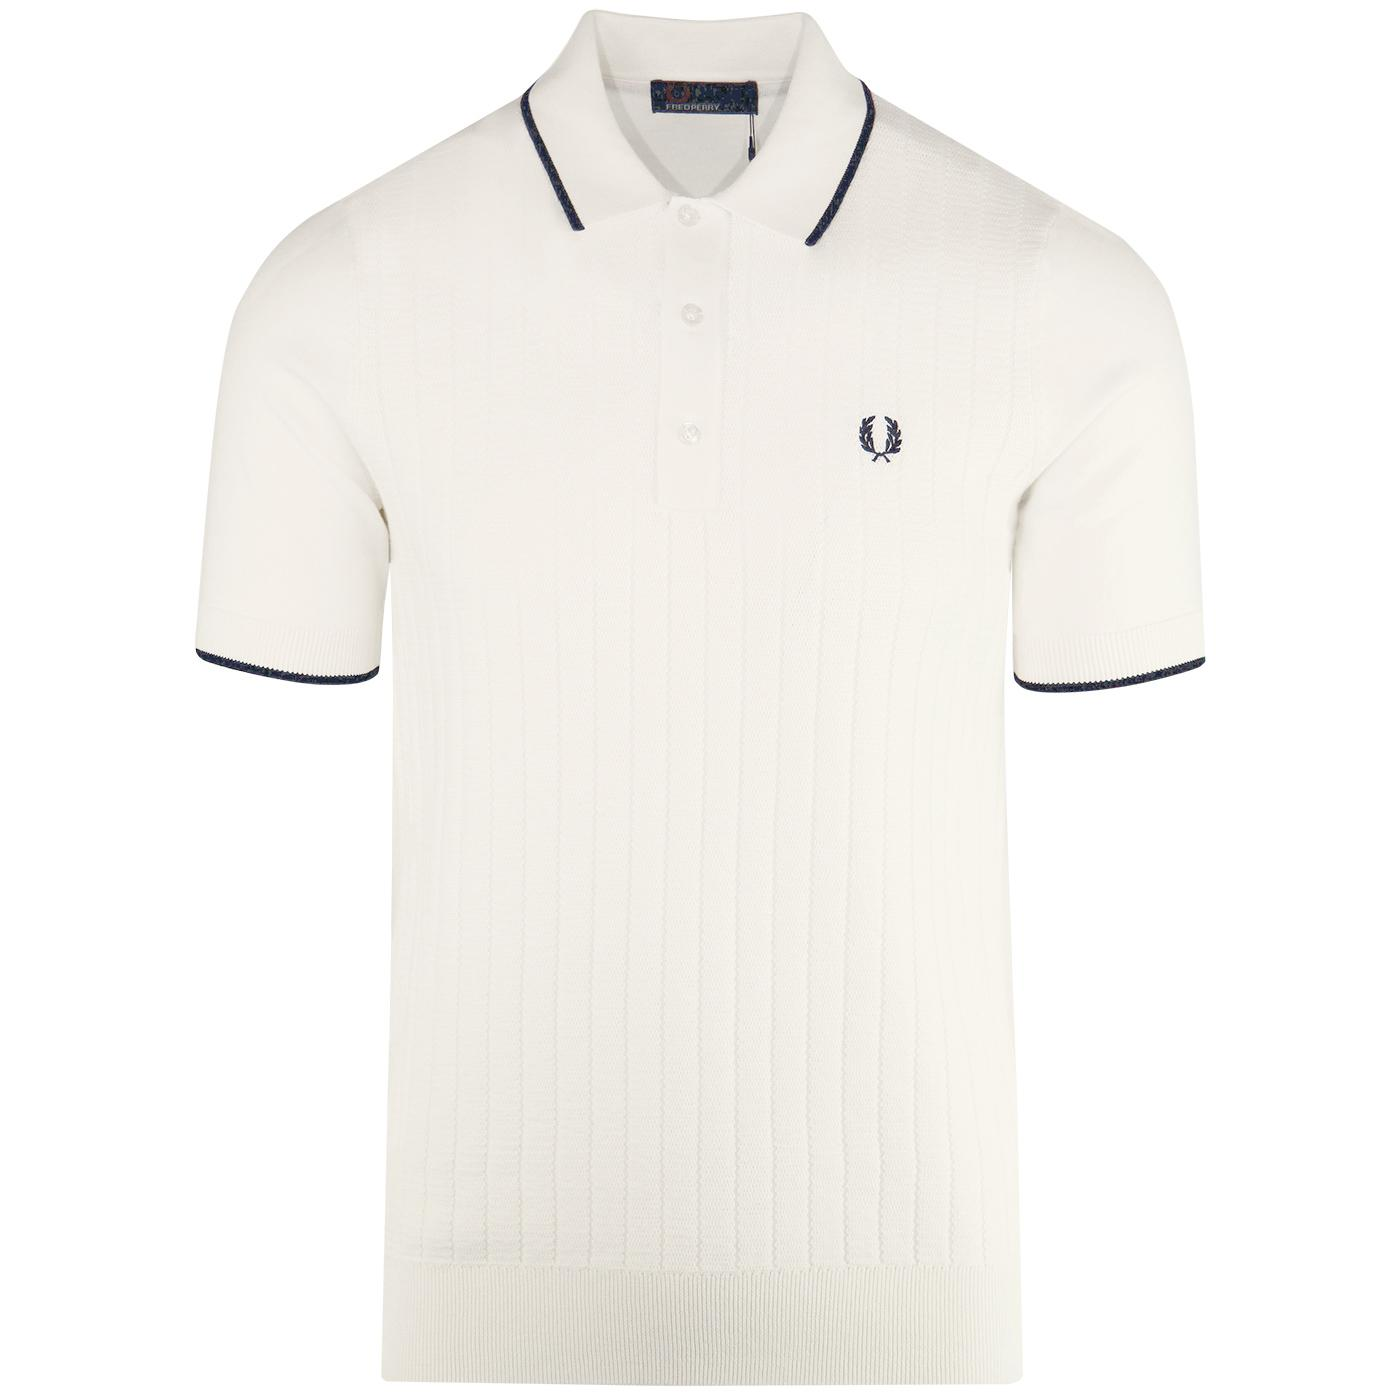 FRED PERRY Mod Texture Front Knit Polo Shirt ECRU